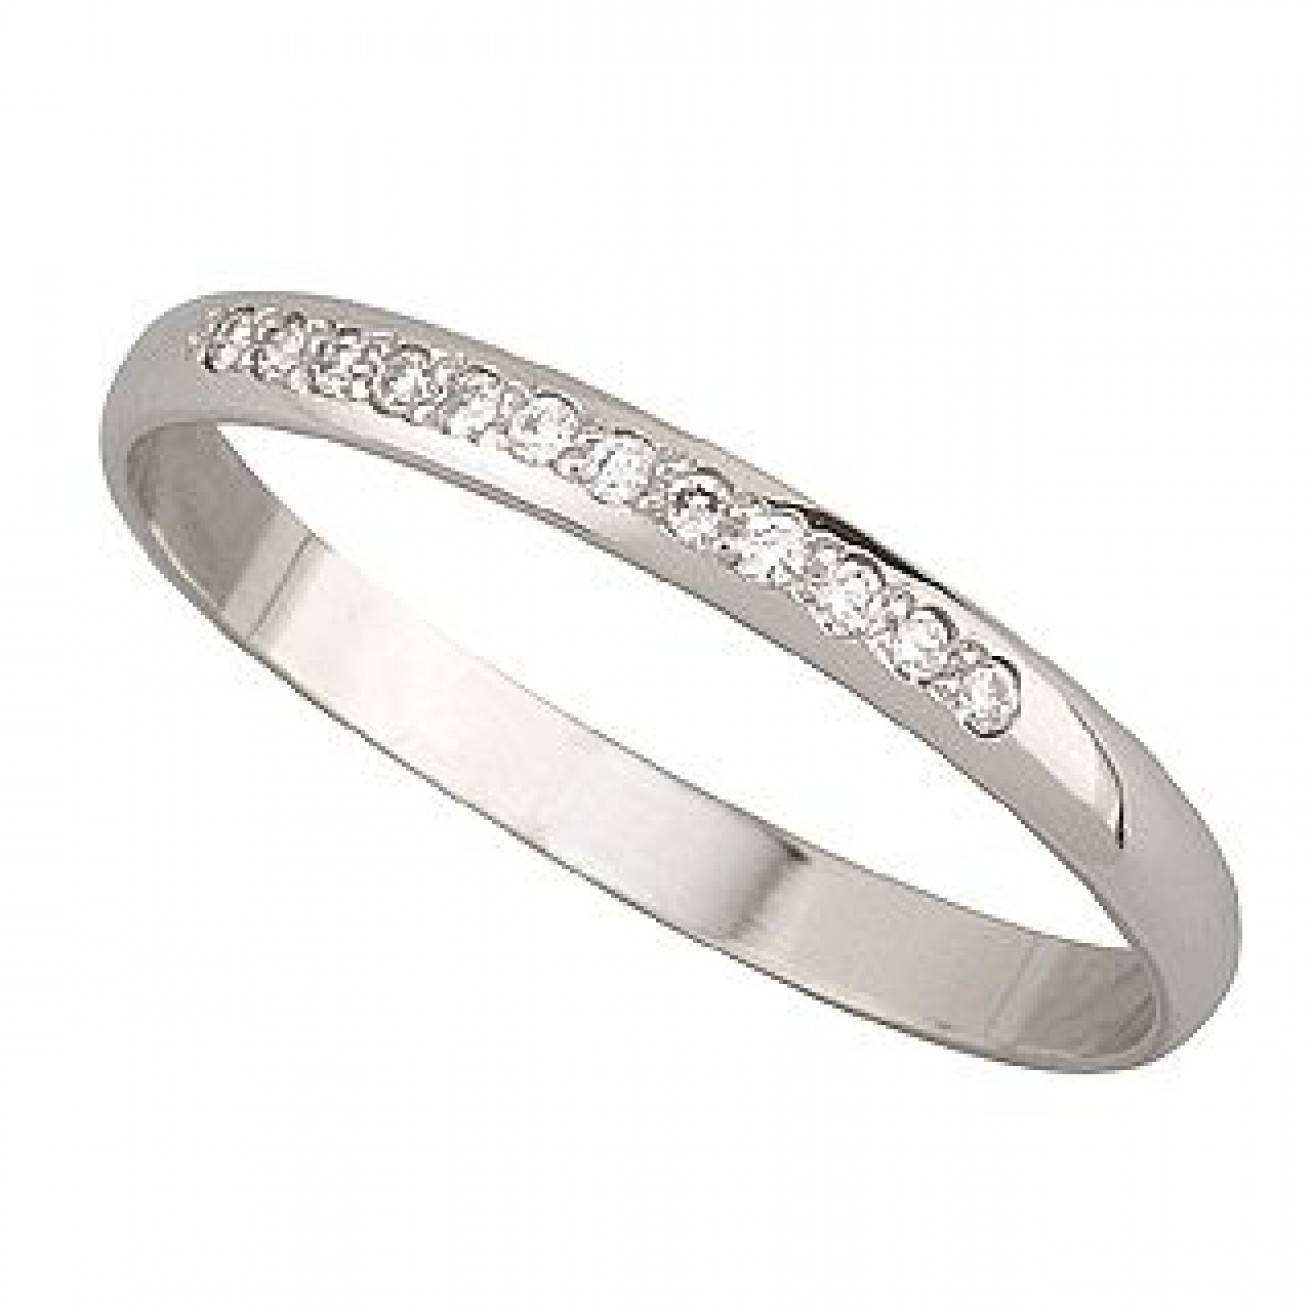 Wedding Rings : Platinum Diamond Rings Platinum Wedding Sets For With Regard To Most Up To Date Platinum Wedding Band With Diamonds (View 14 of 15)